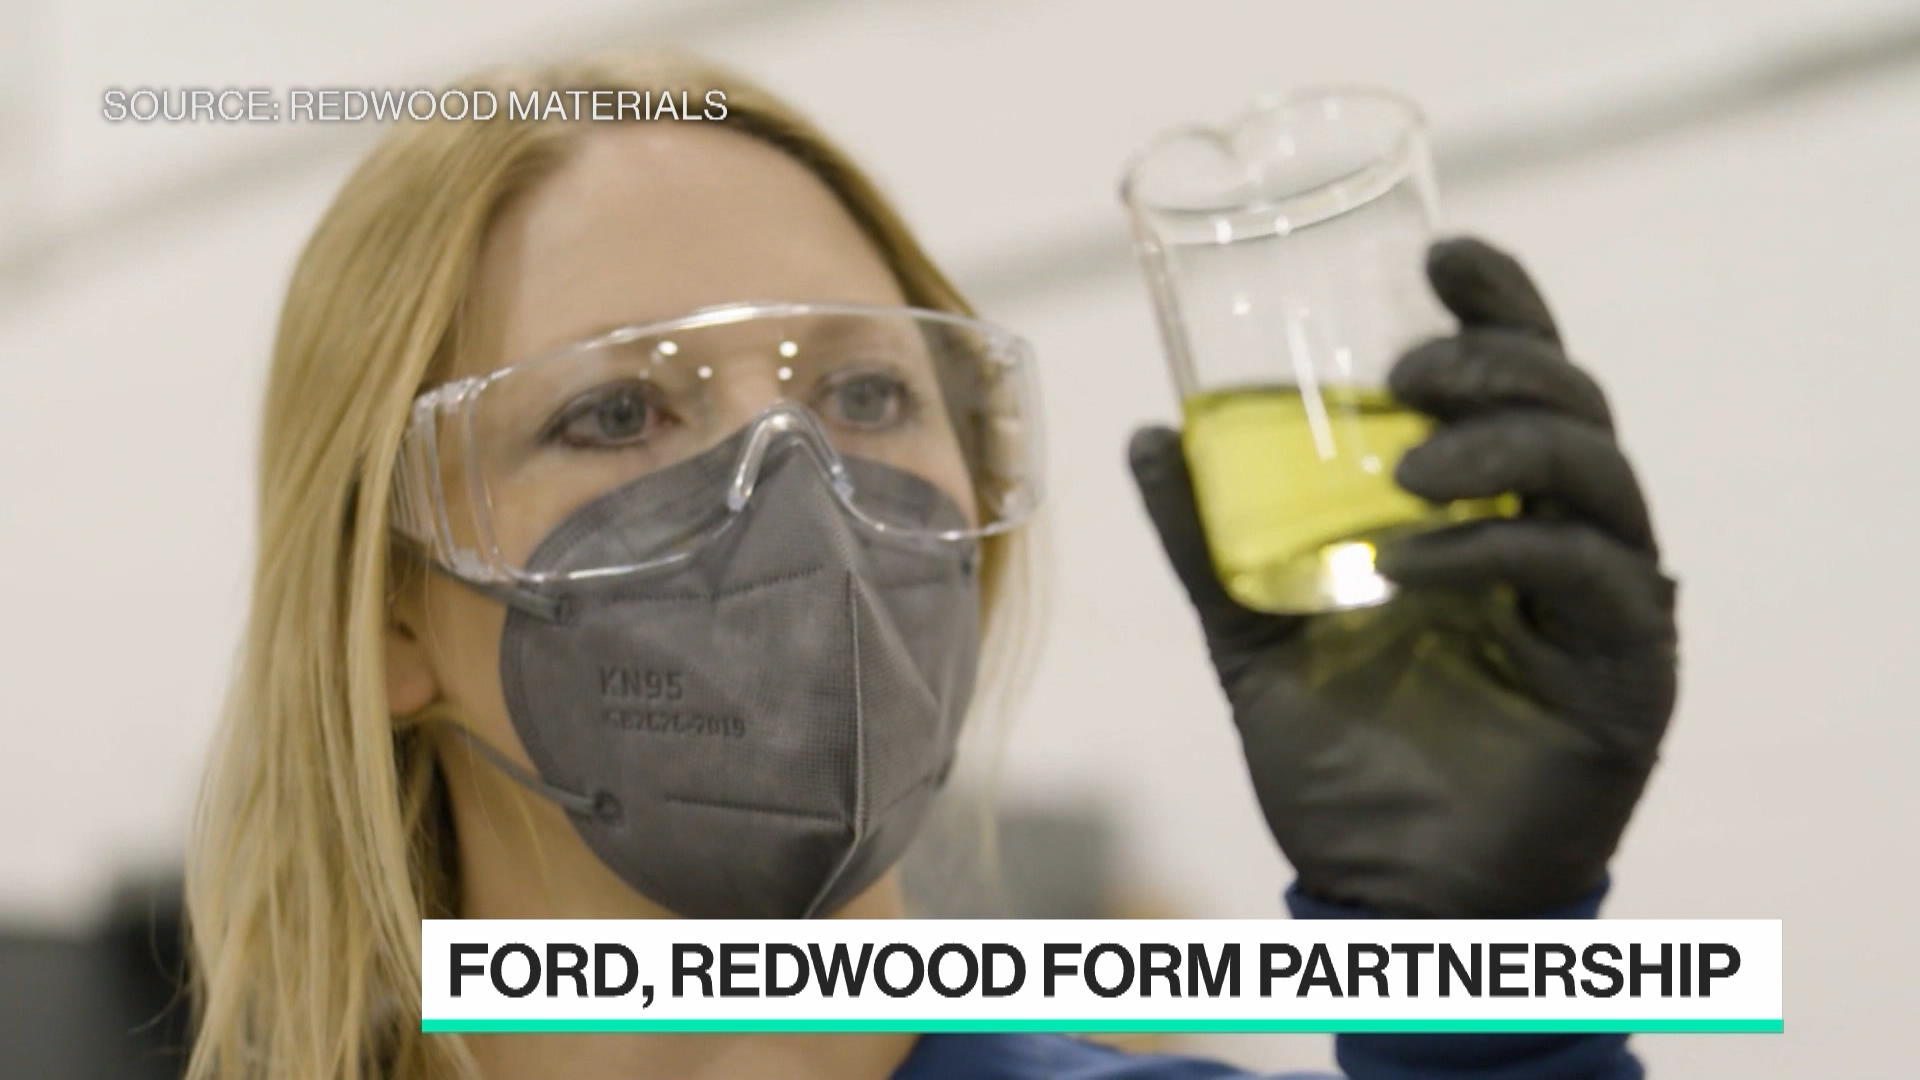 Ford to Make Renewable Vehicles With Redwood Materials